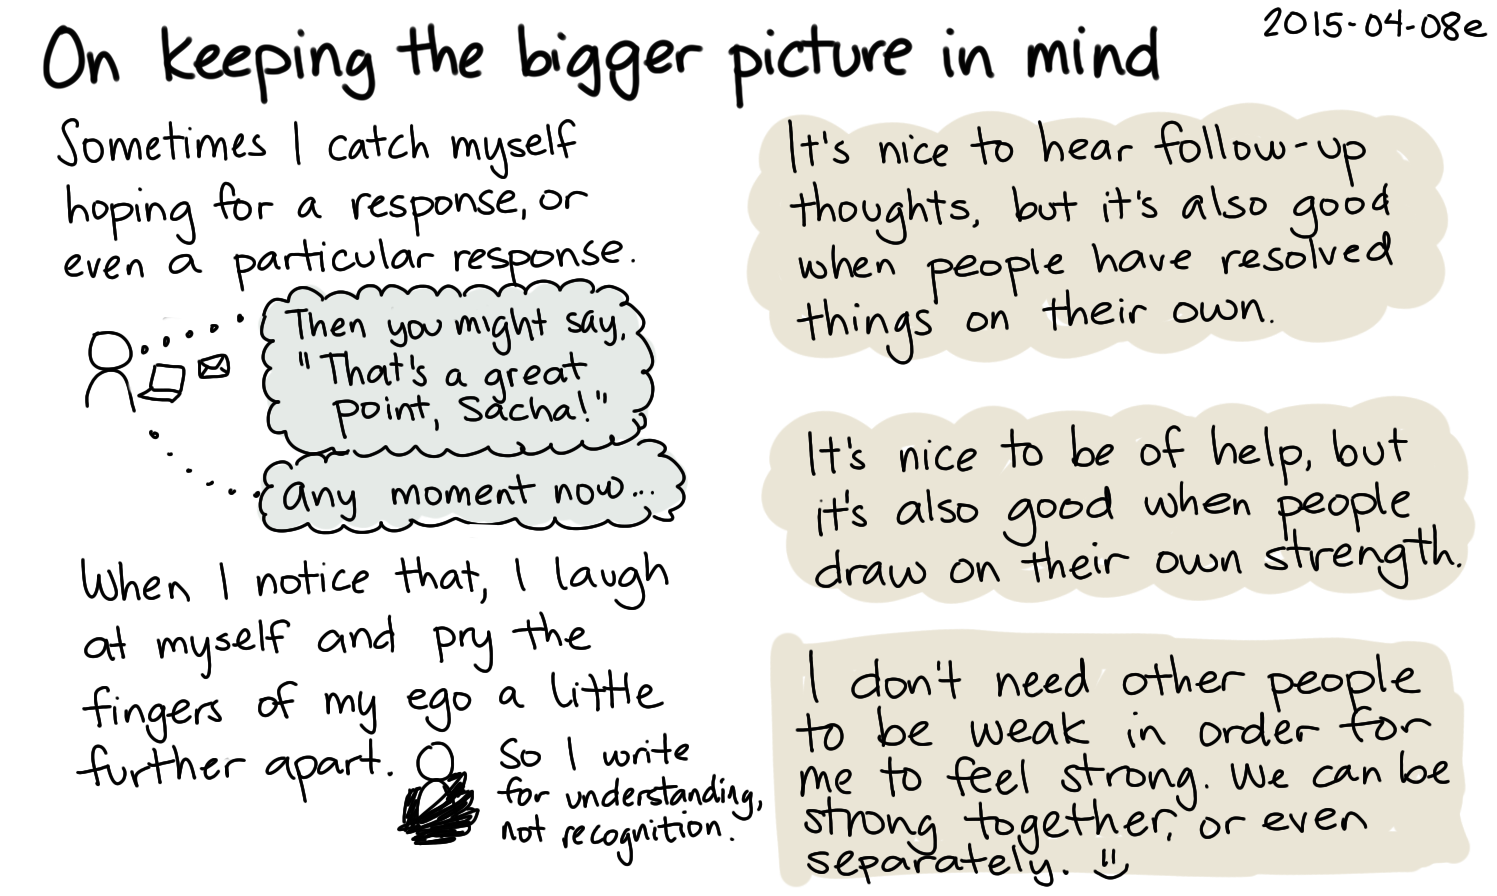 2015-04-08e On keeping the bigger picture in mind -- index card #connecting #support #ego.png